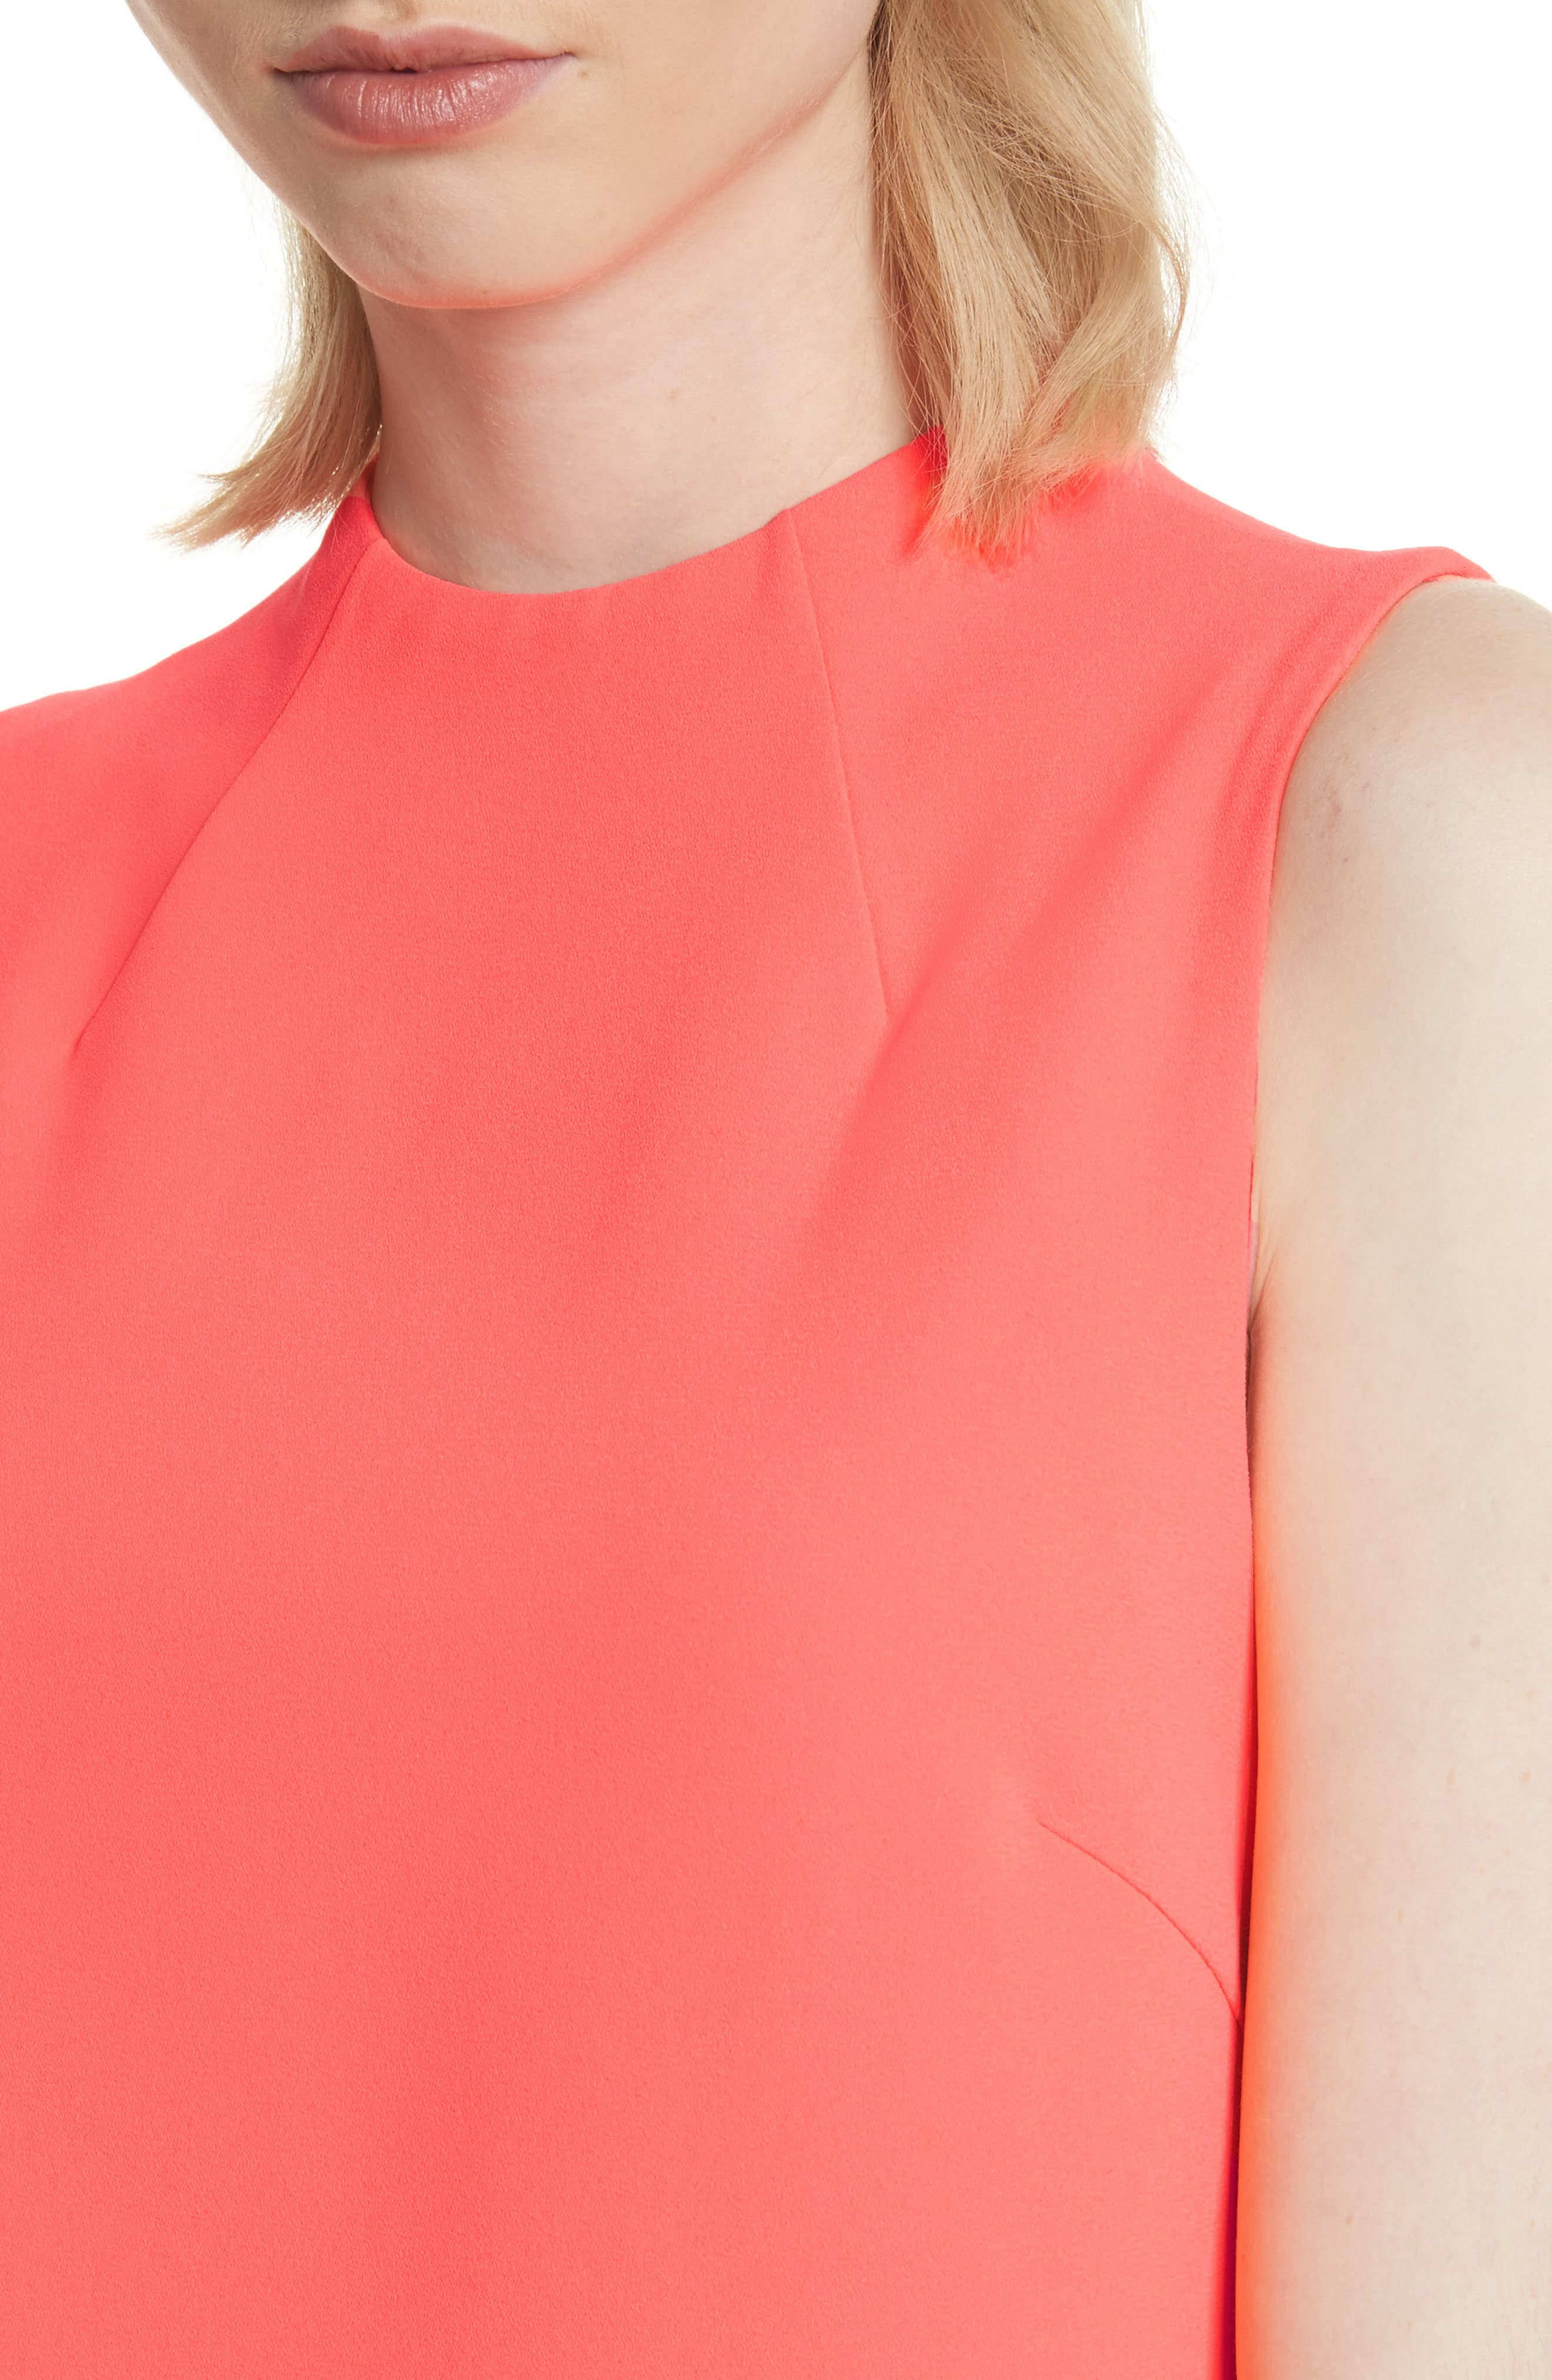 Coley A-Line Shift Dress,                             Alternate thumbnail 4, color,                             Neon Coral